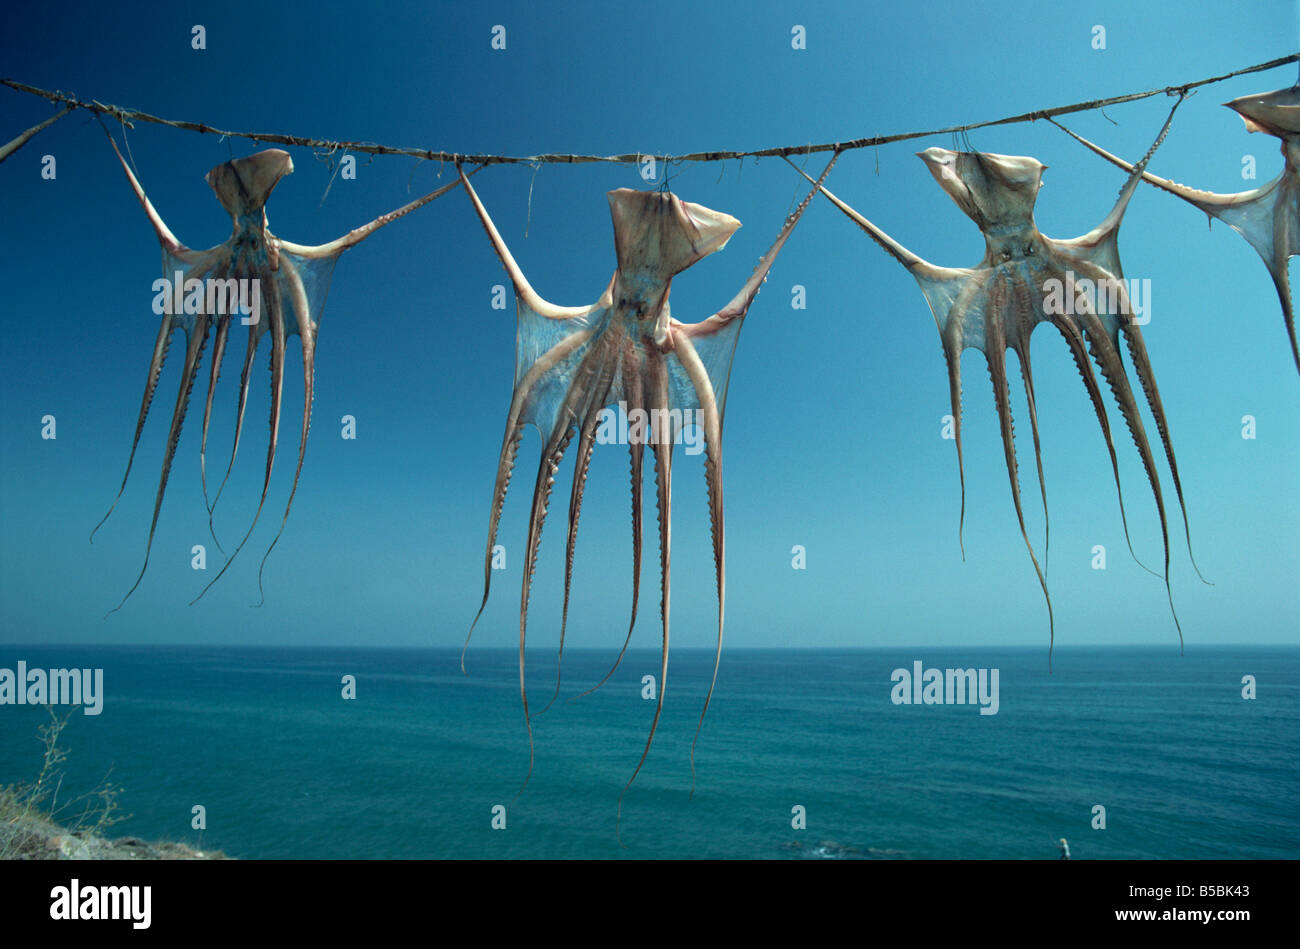 Octopi hung out to dry, Nerja, Costa del Sol, Andalucia, Spain, Europe - Stock Image